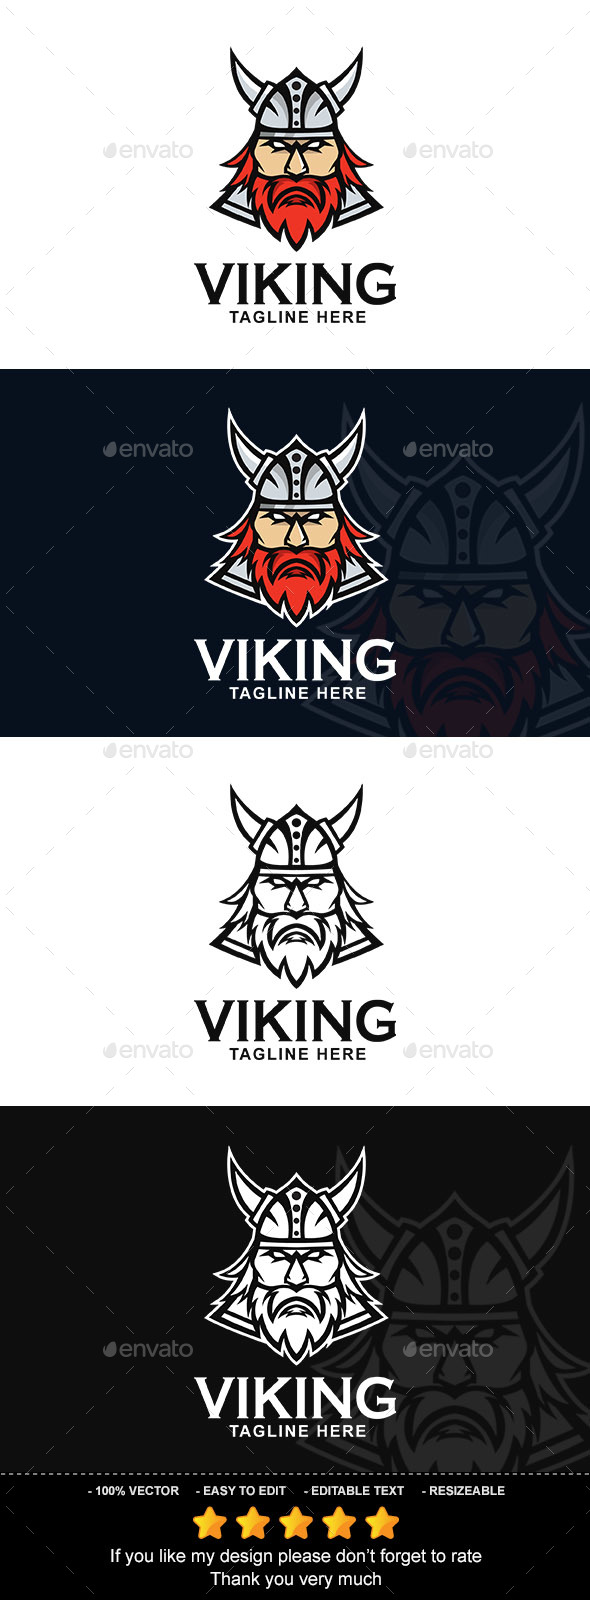 Viking - Vector Abstract